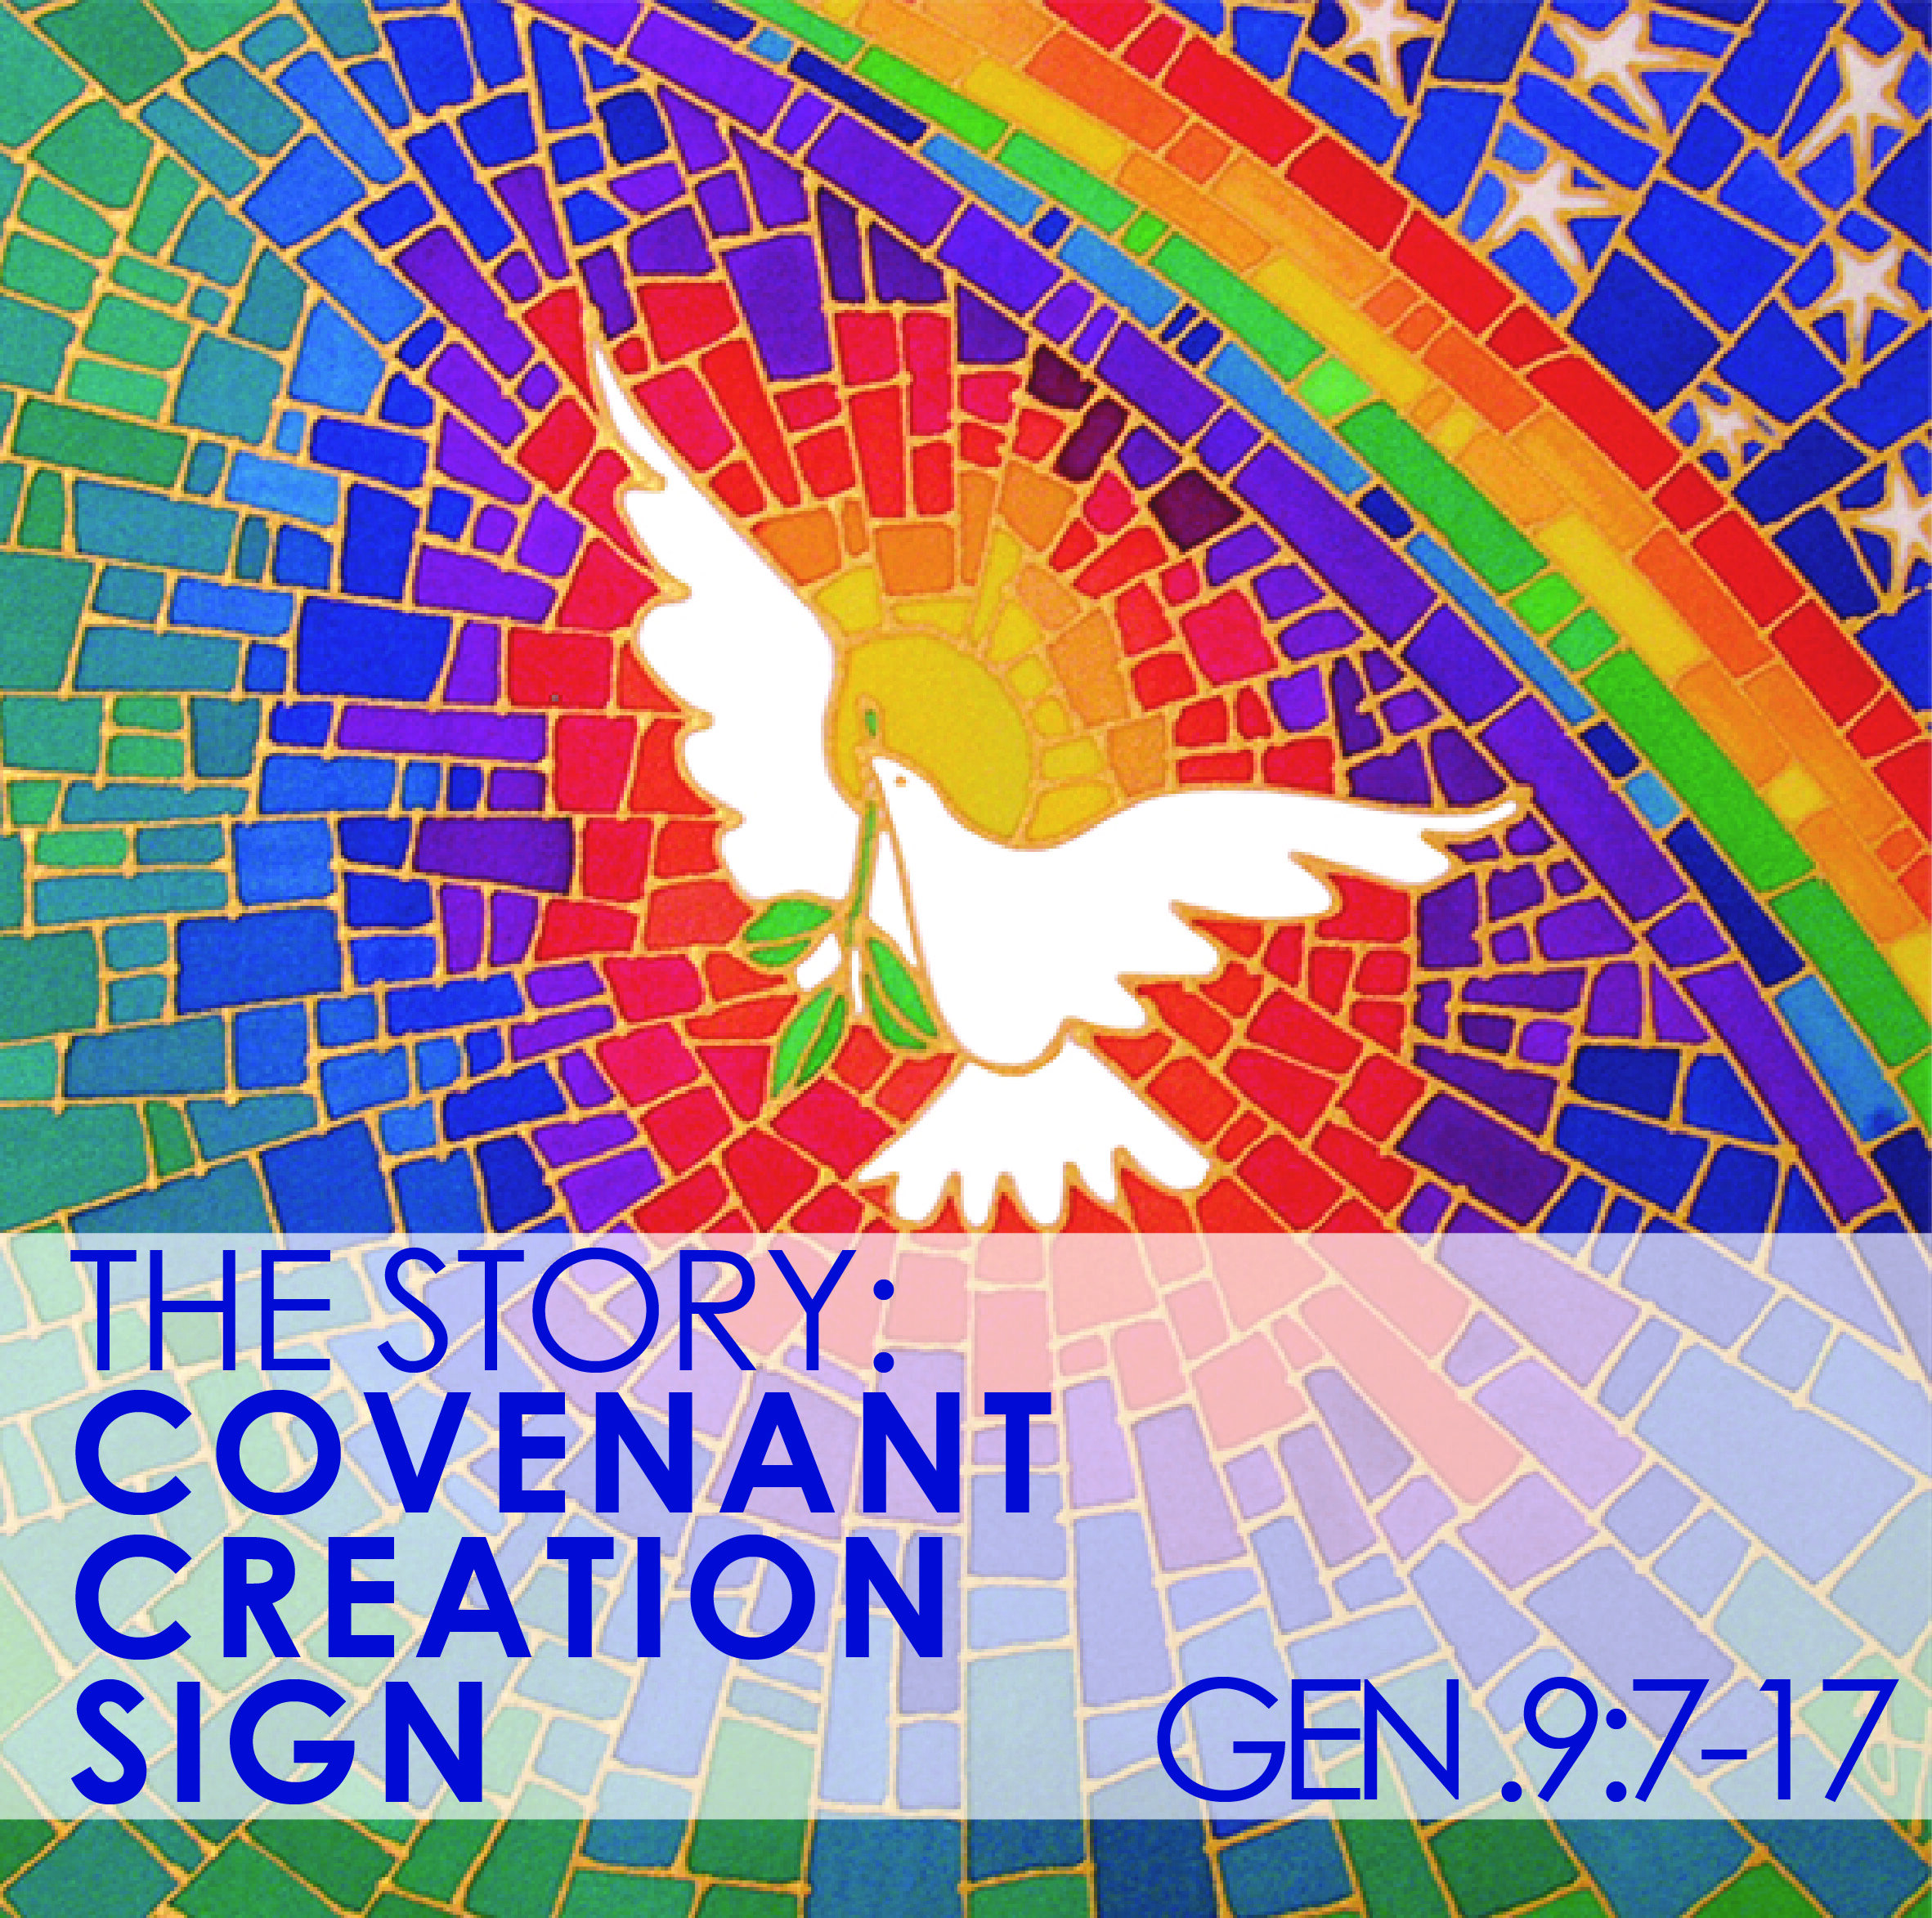 covenantsign-01.jpg